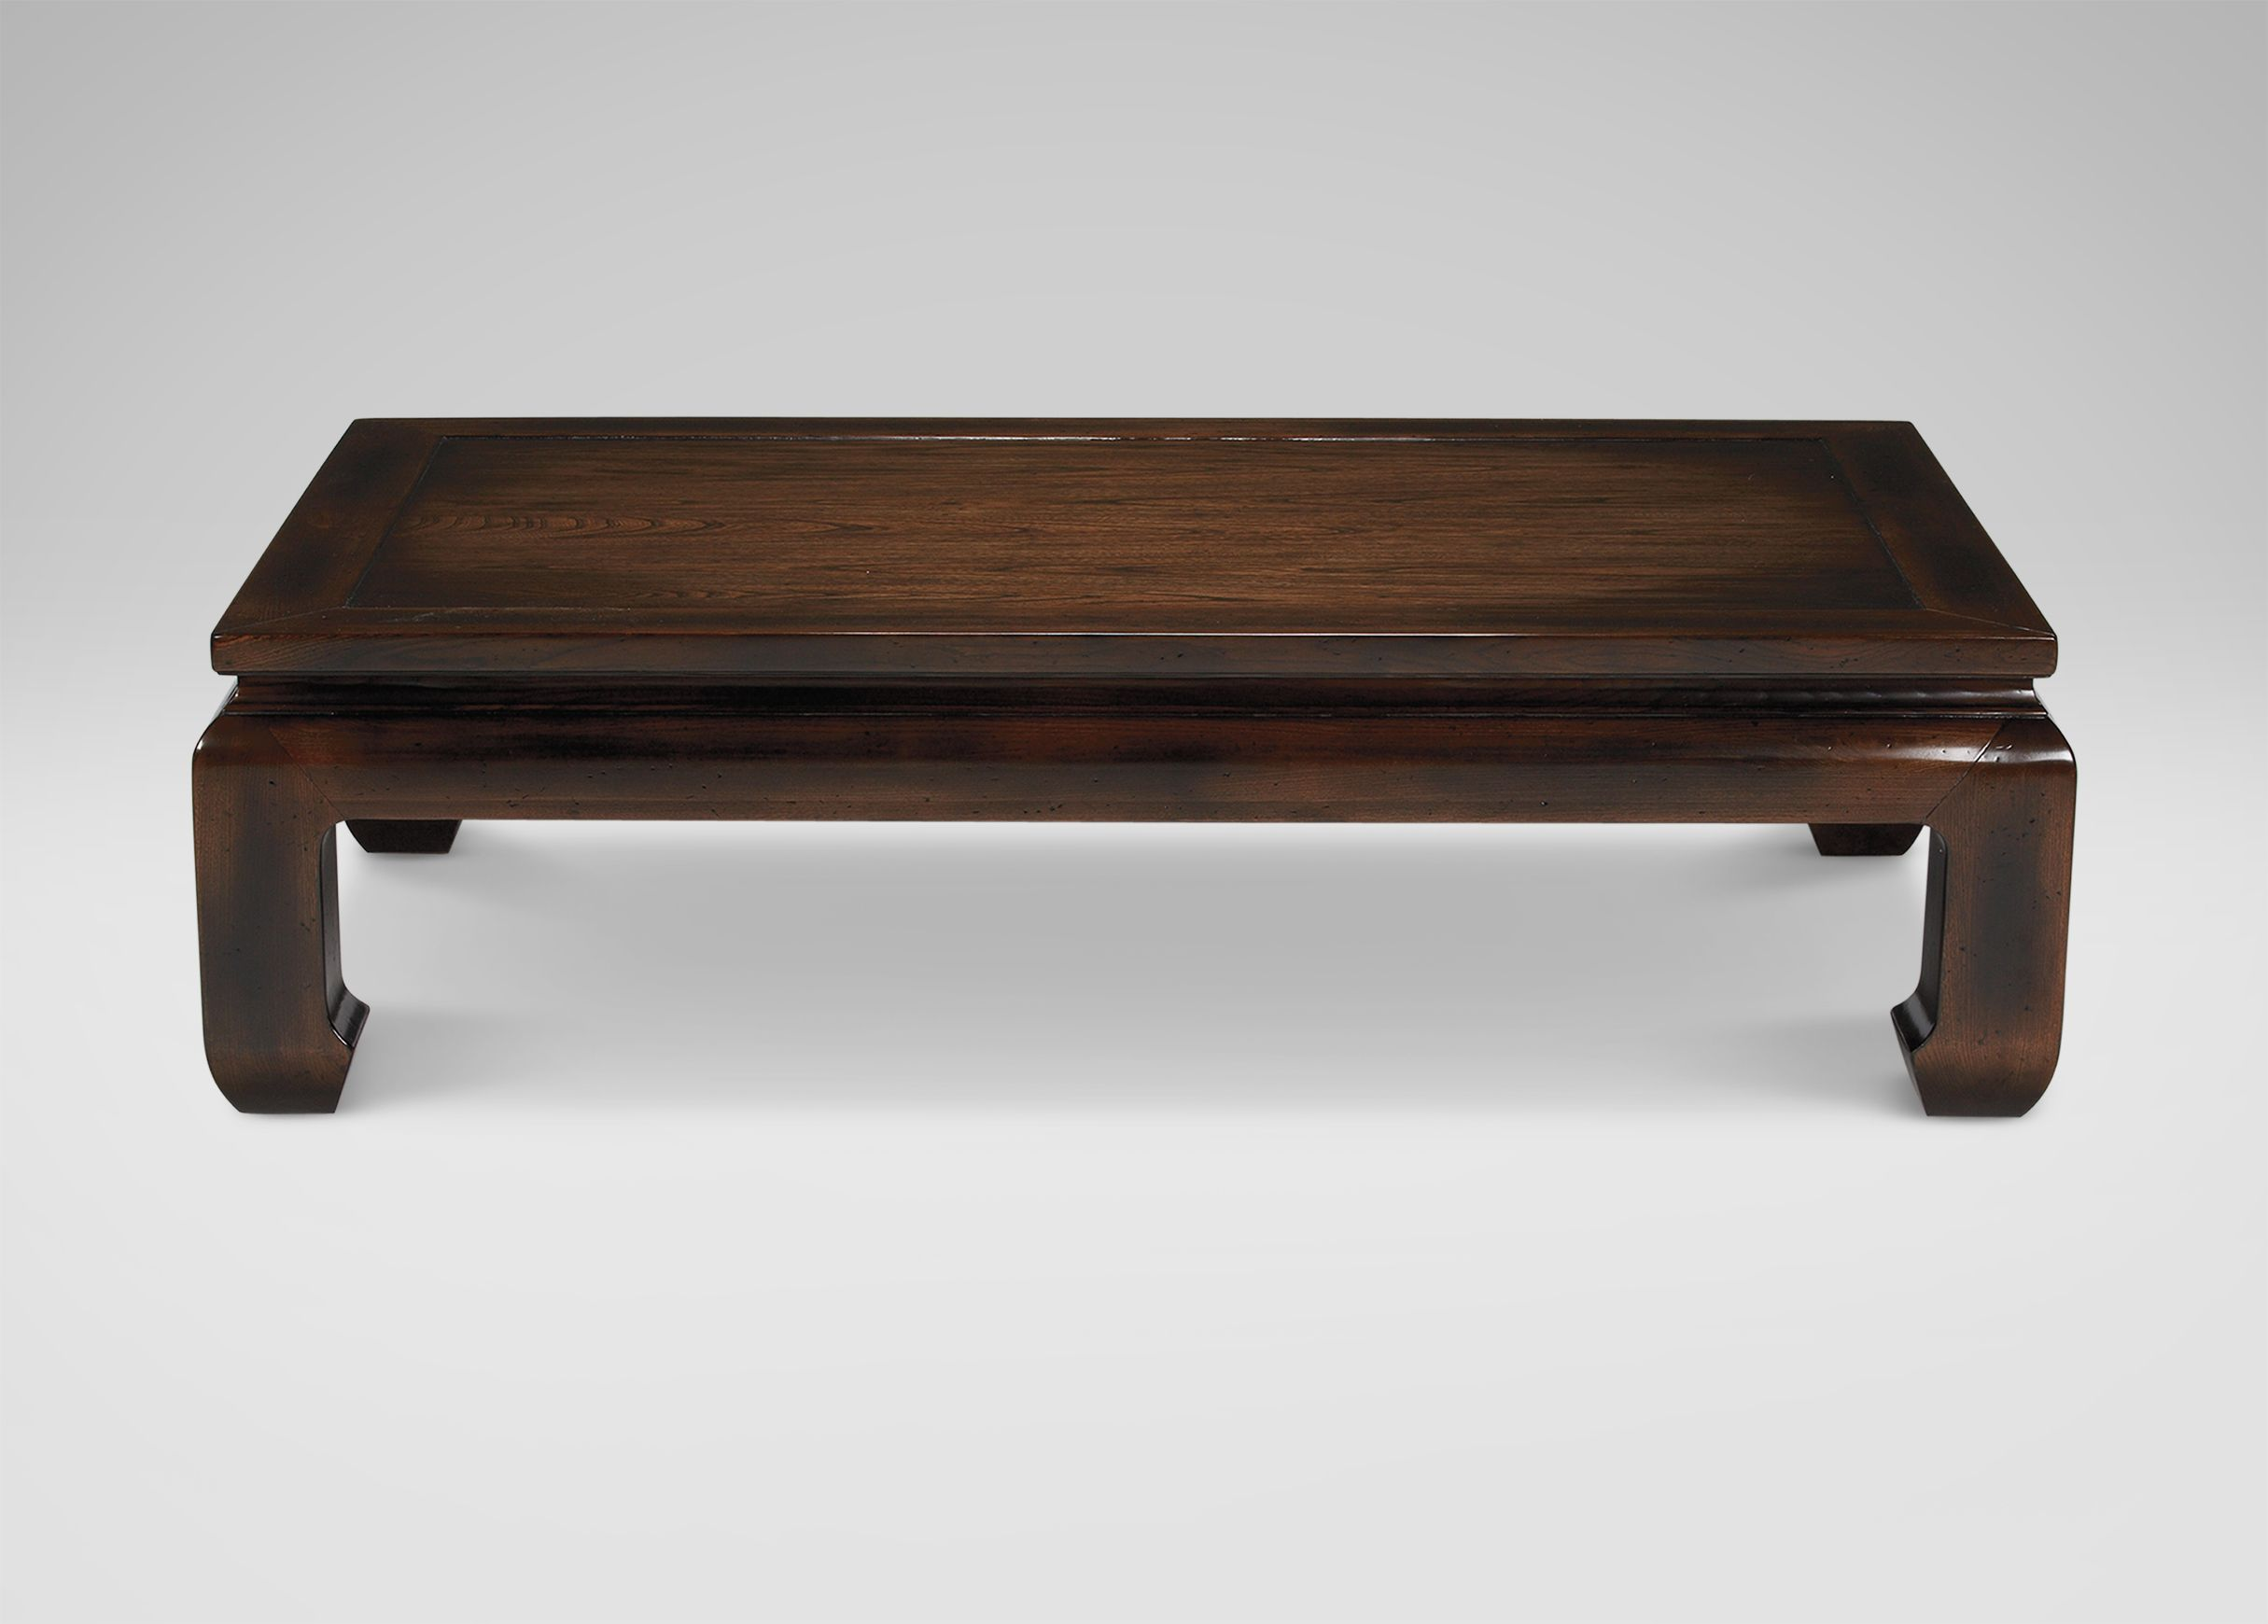 Dynasty Rectangular Coffee Table Ethan Allen 59 5 W 16 5 H 37 5 D Furniture Pinterest